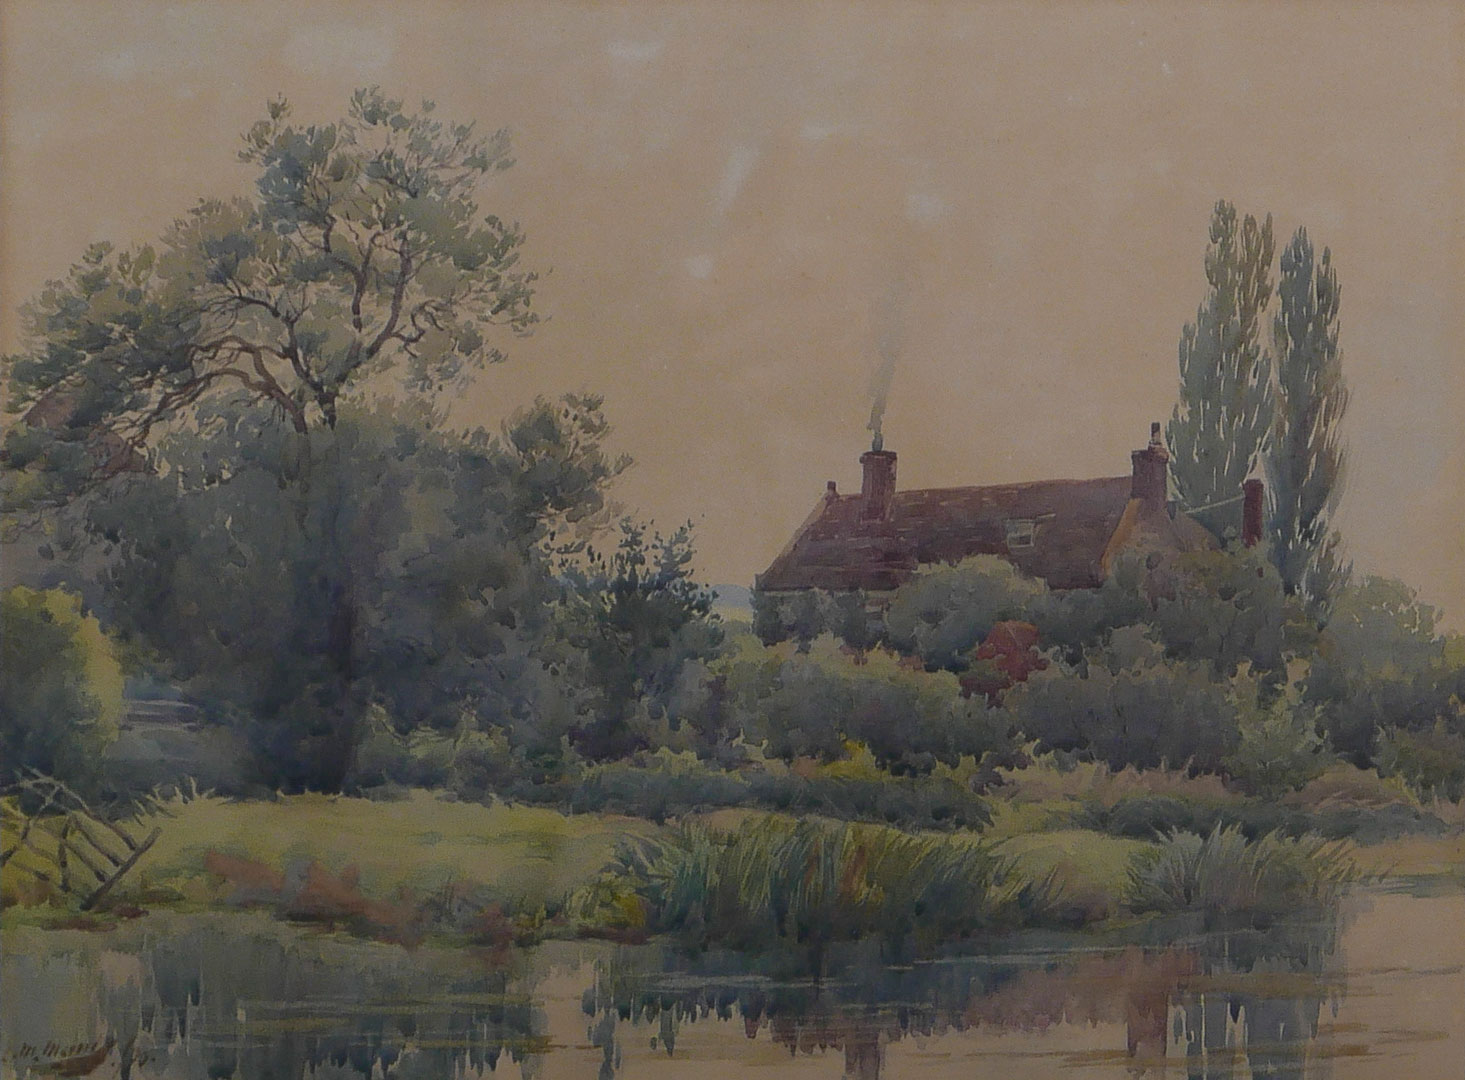 Untitled (Old farm house)